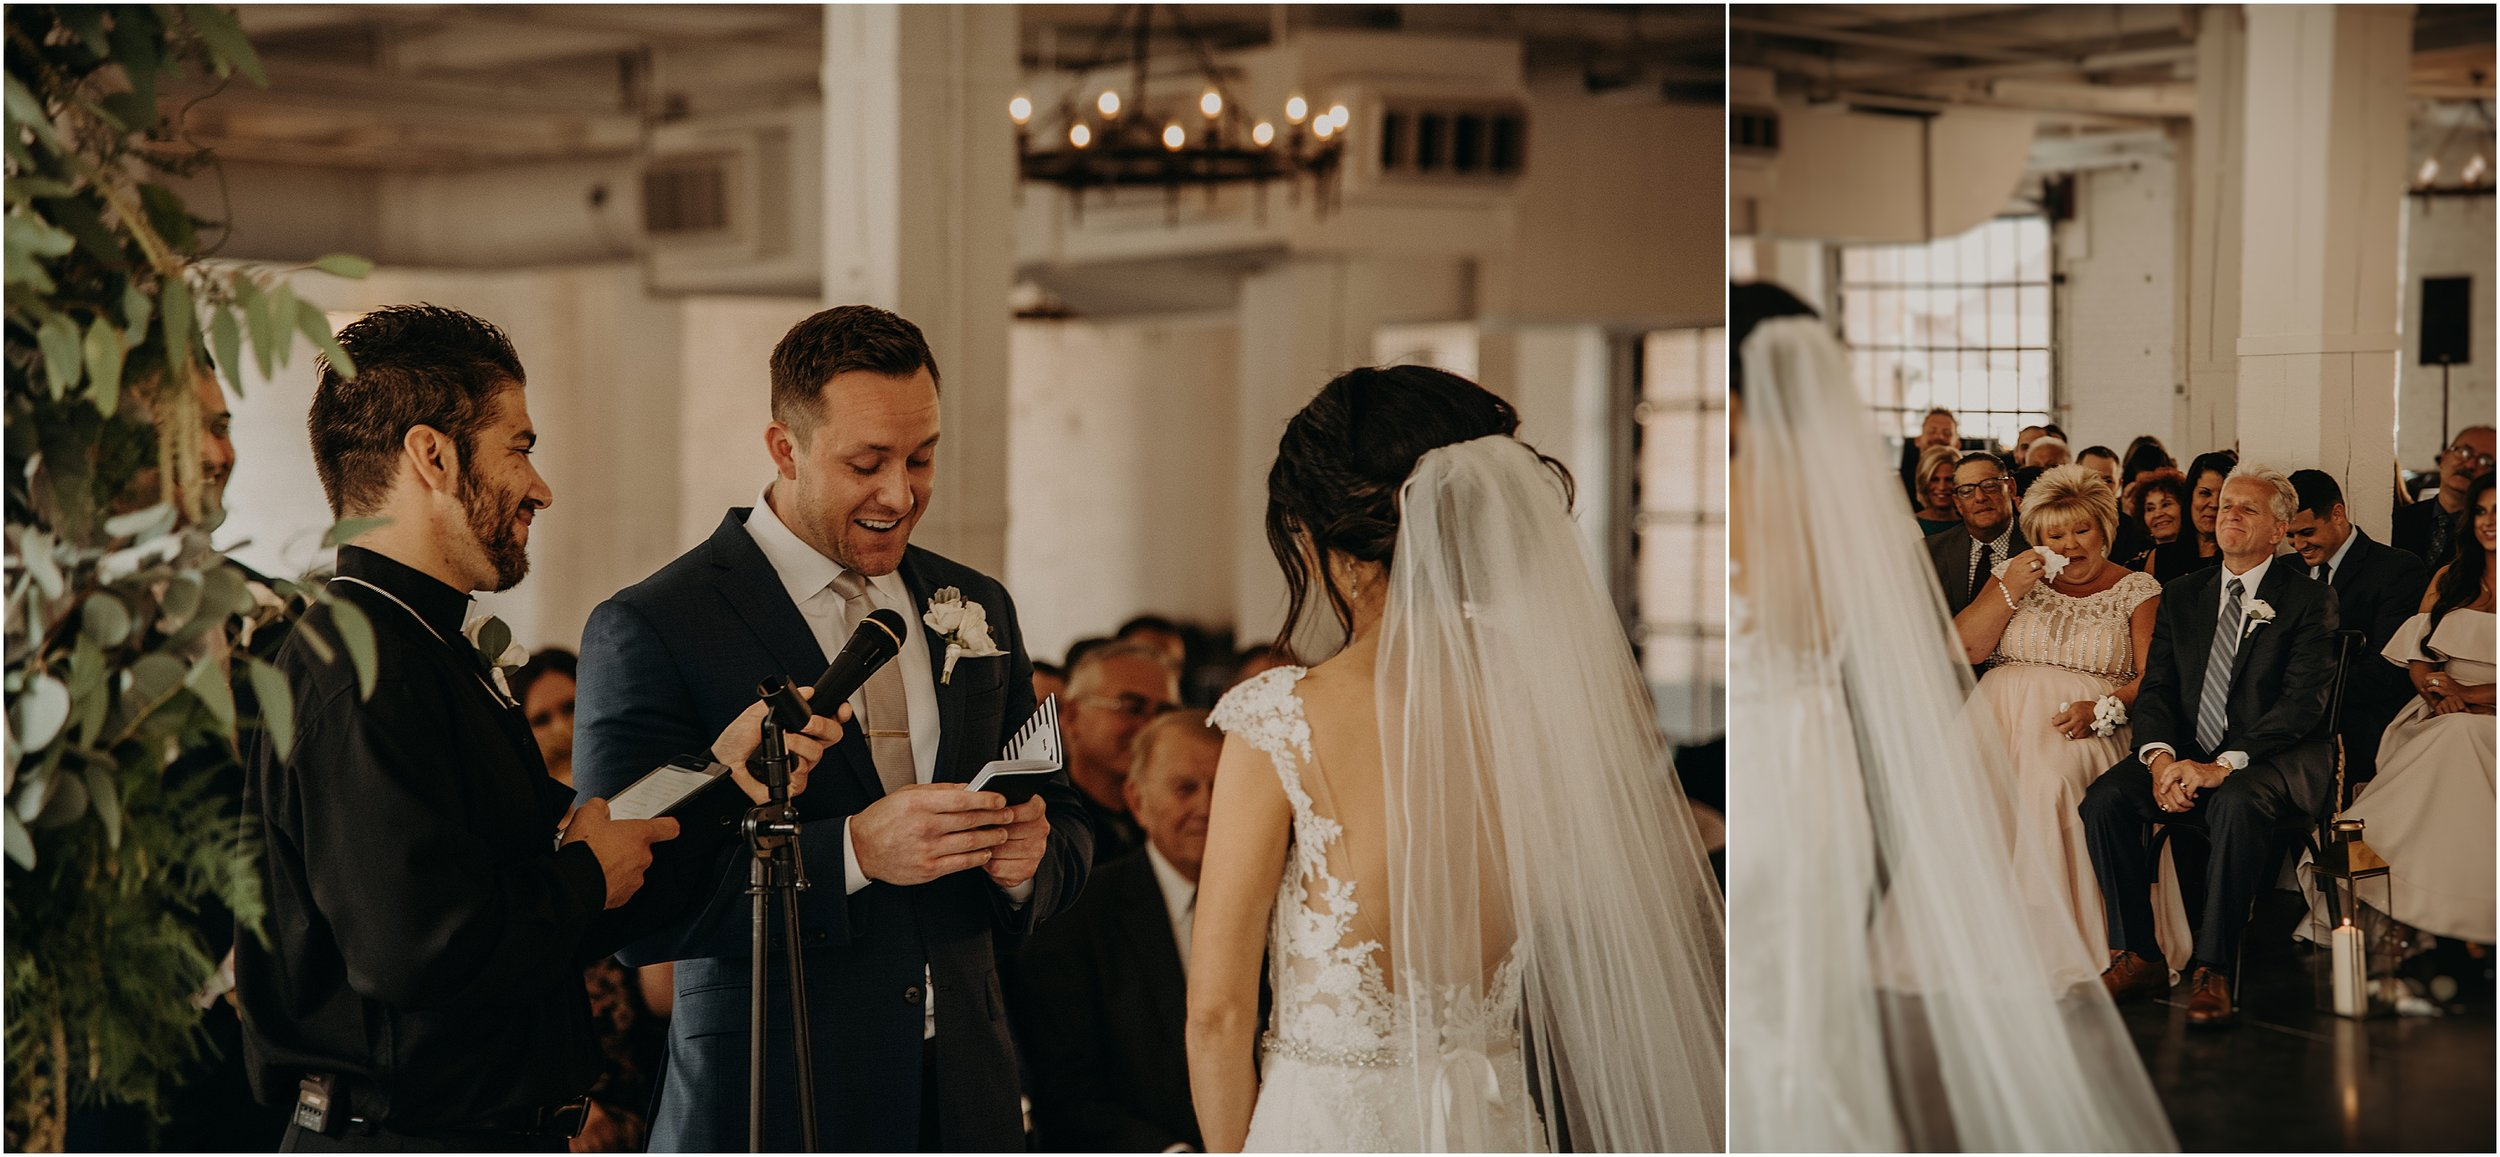 The groom reads his vows while his mother wipes away tears